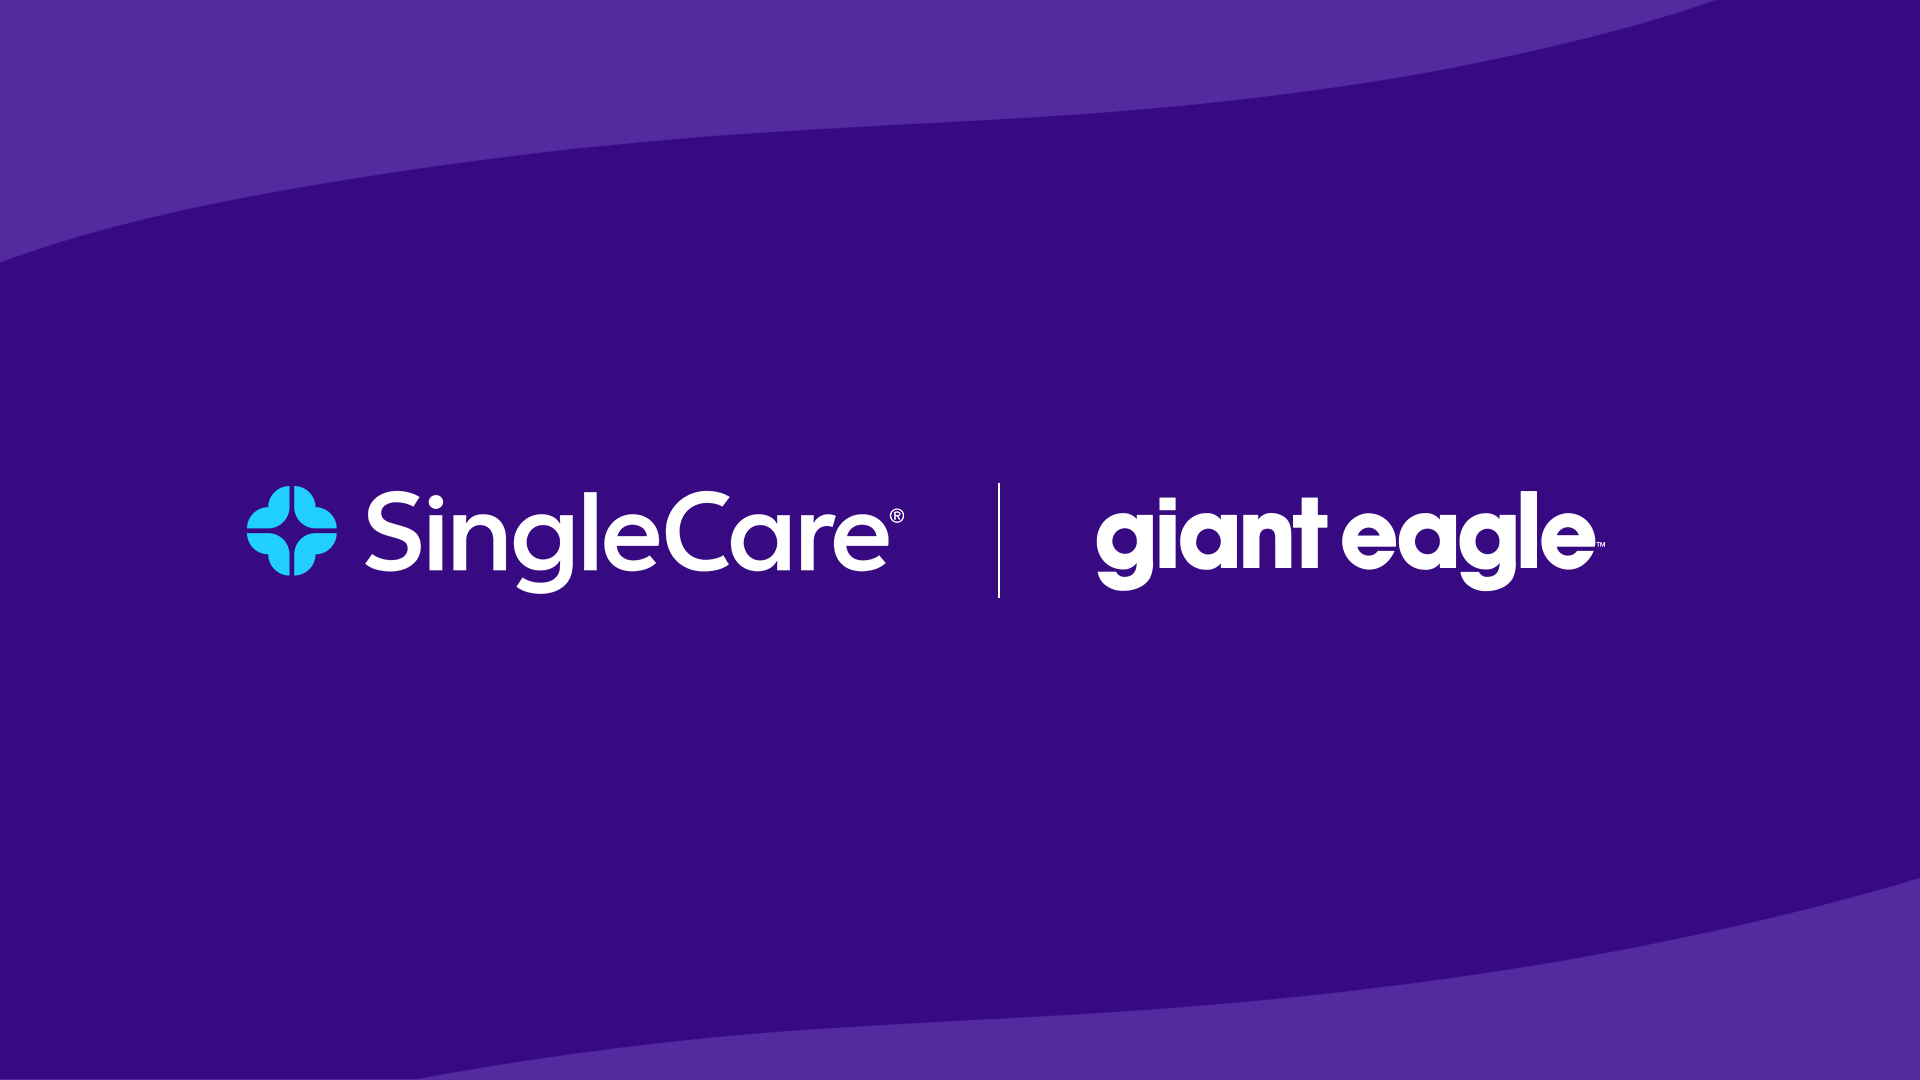 SingleCare savings now available at Giant Eagle